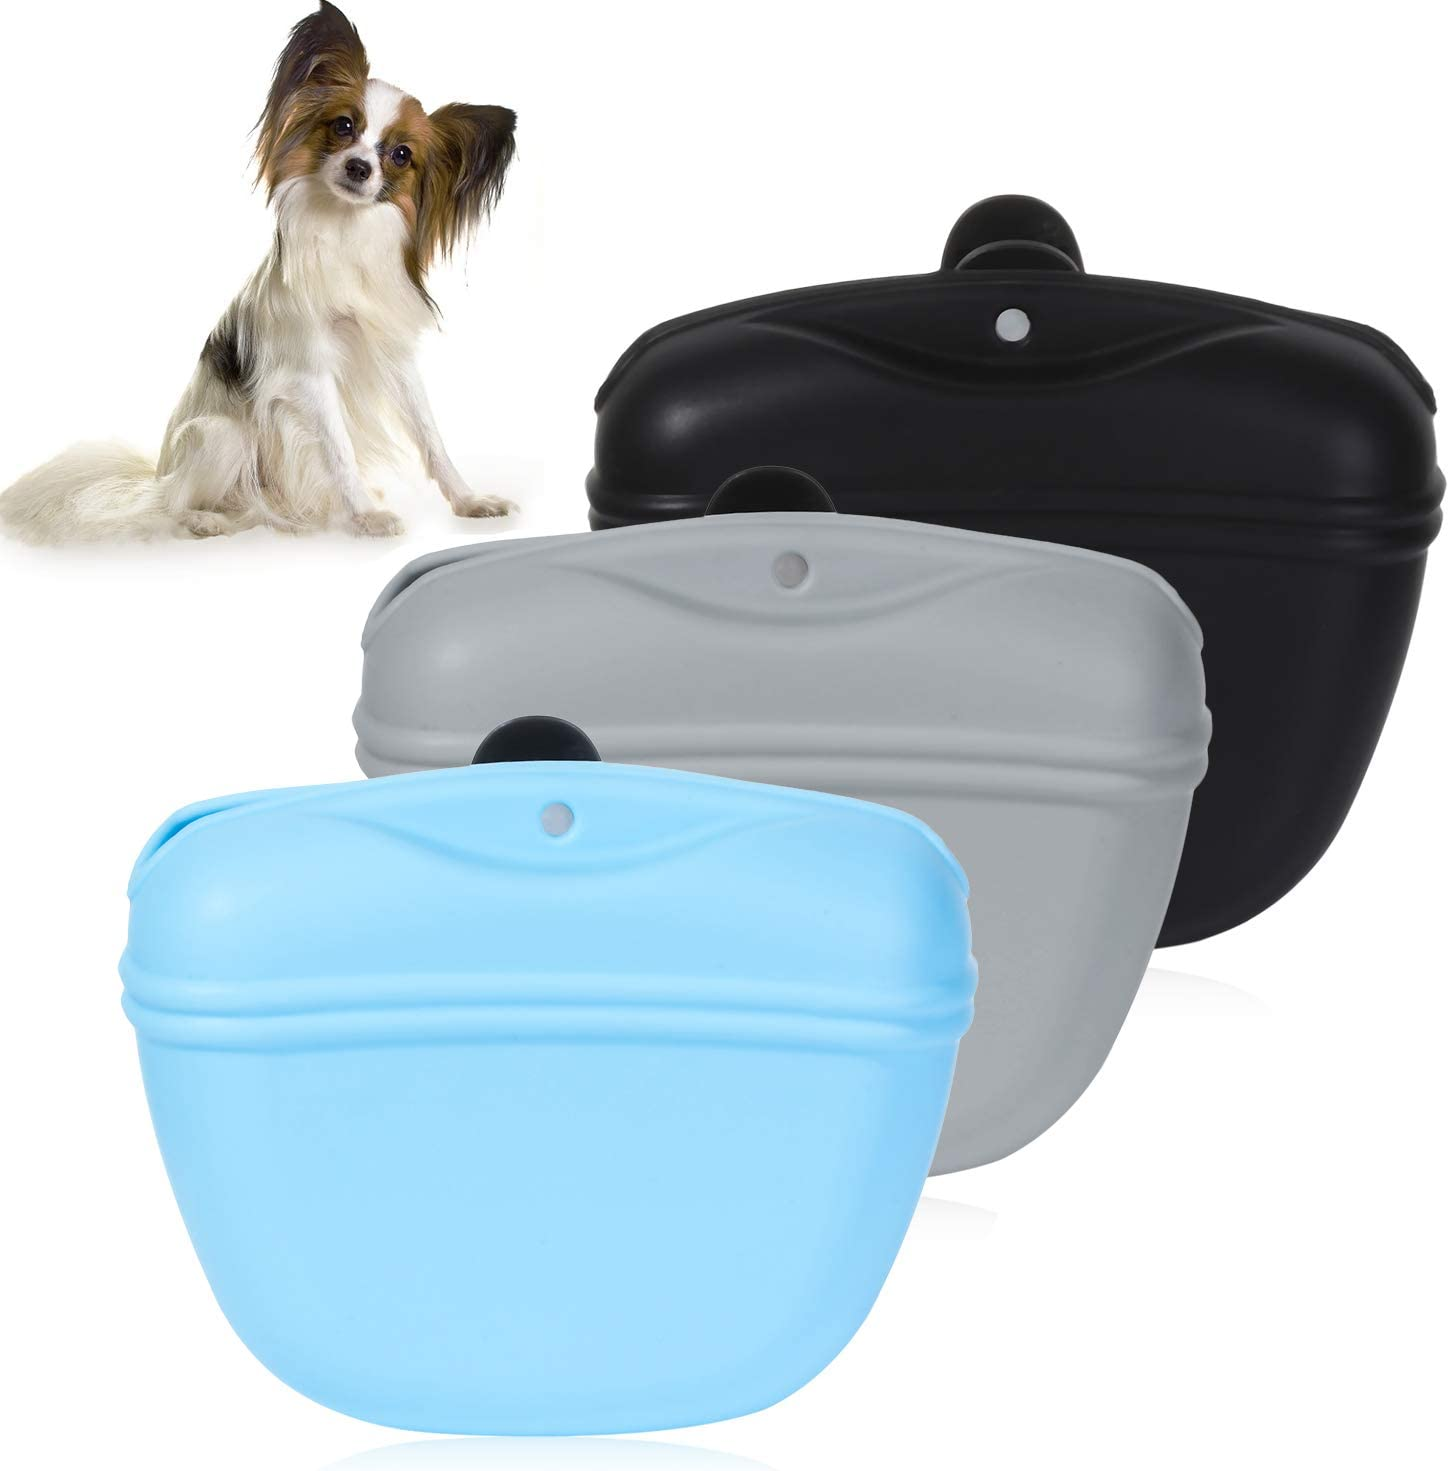 skonhed 3Pcs Silicone Dog Treat Pouch Training Pet Puppy Bag Pocket Snack Treat Food Holder with Clip for Belt for Dog Walk